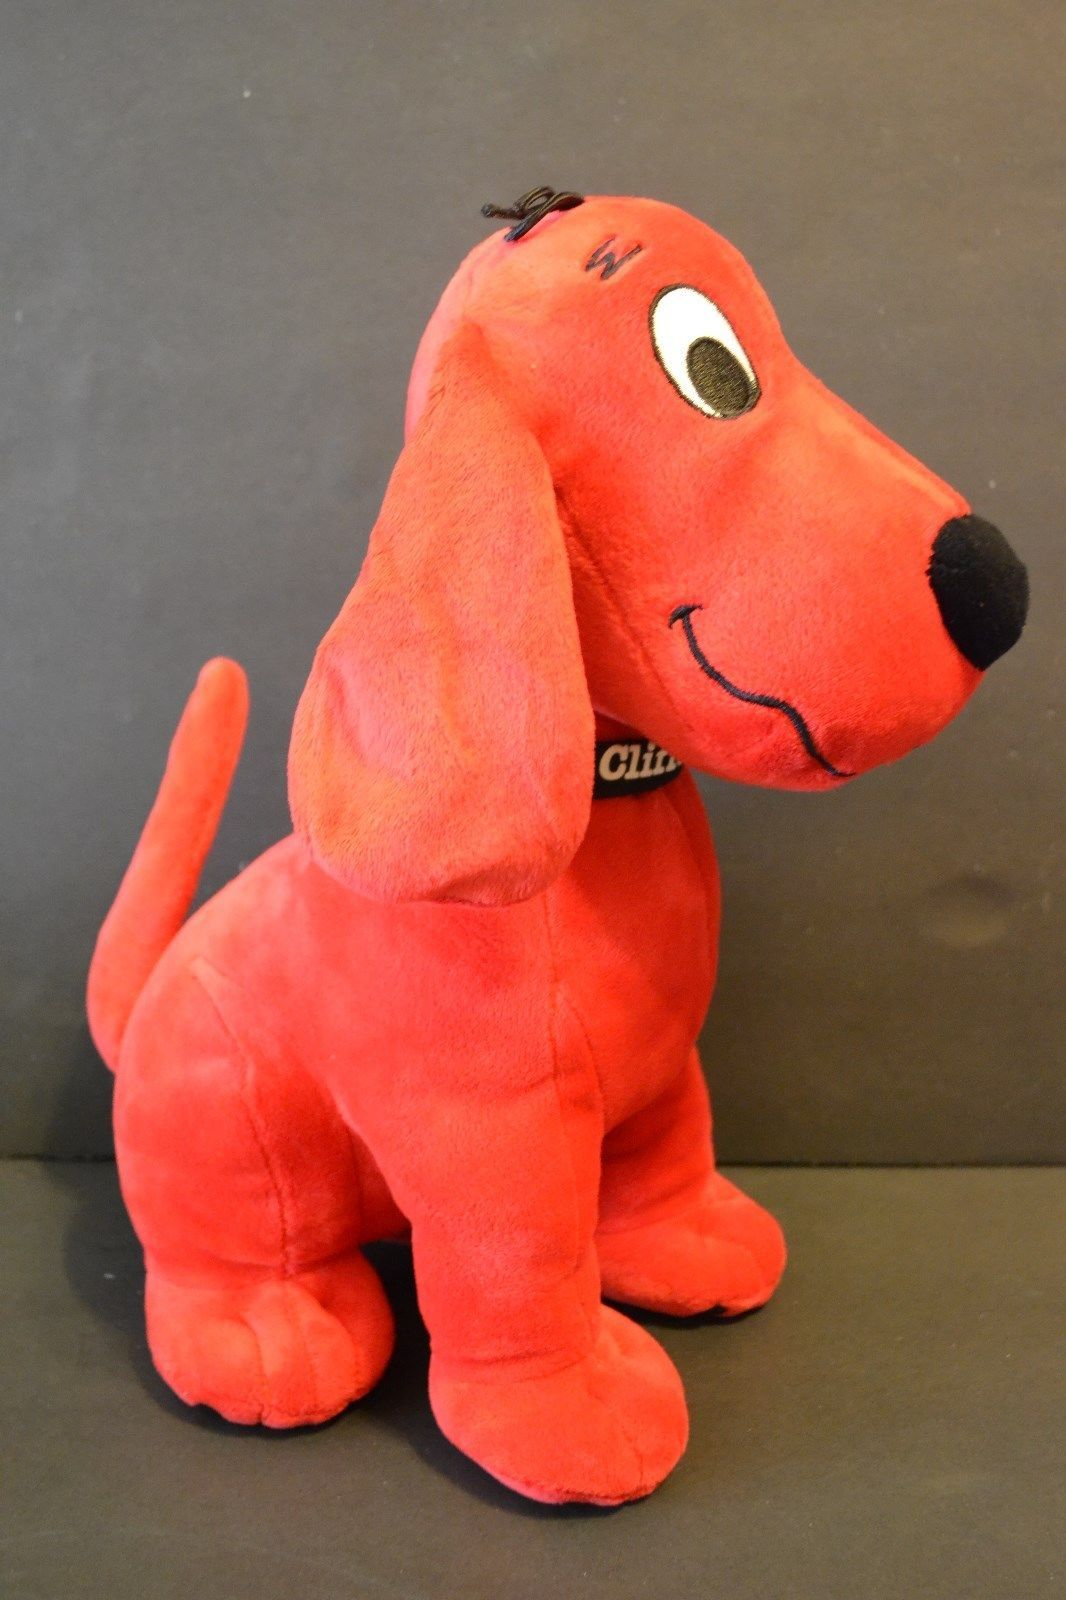 3c4303ed8785a Clifford The Big Red Dog Stuffed Plush and 8 similar items